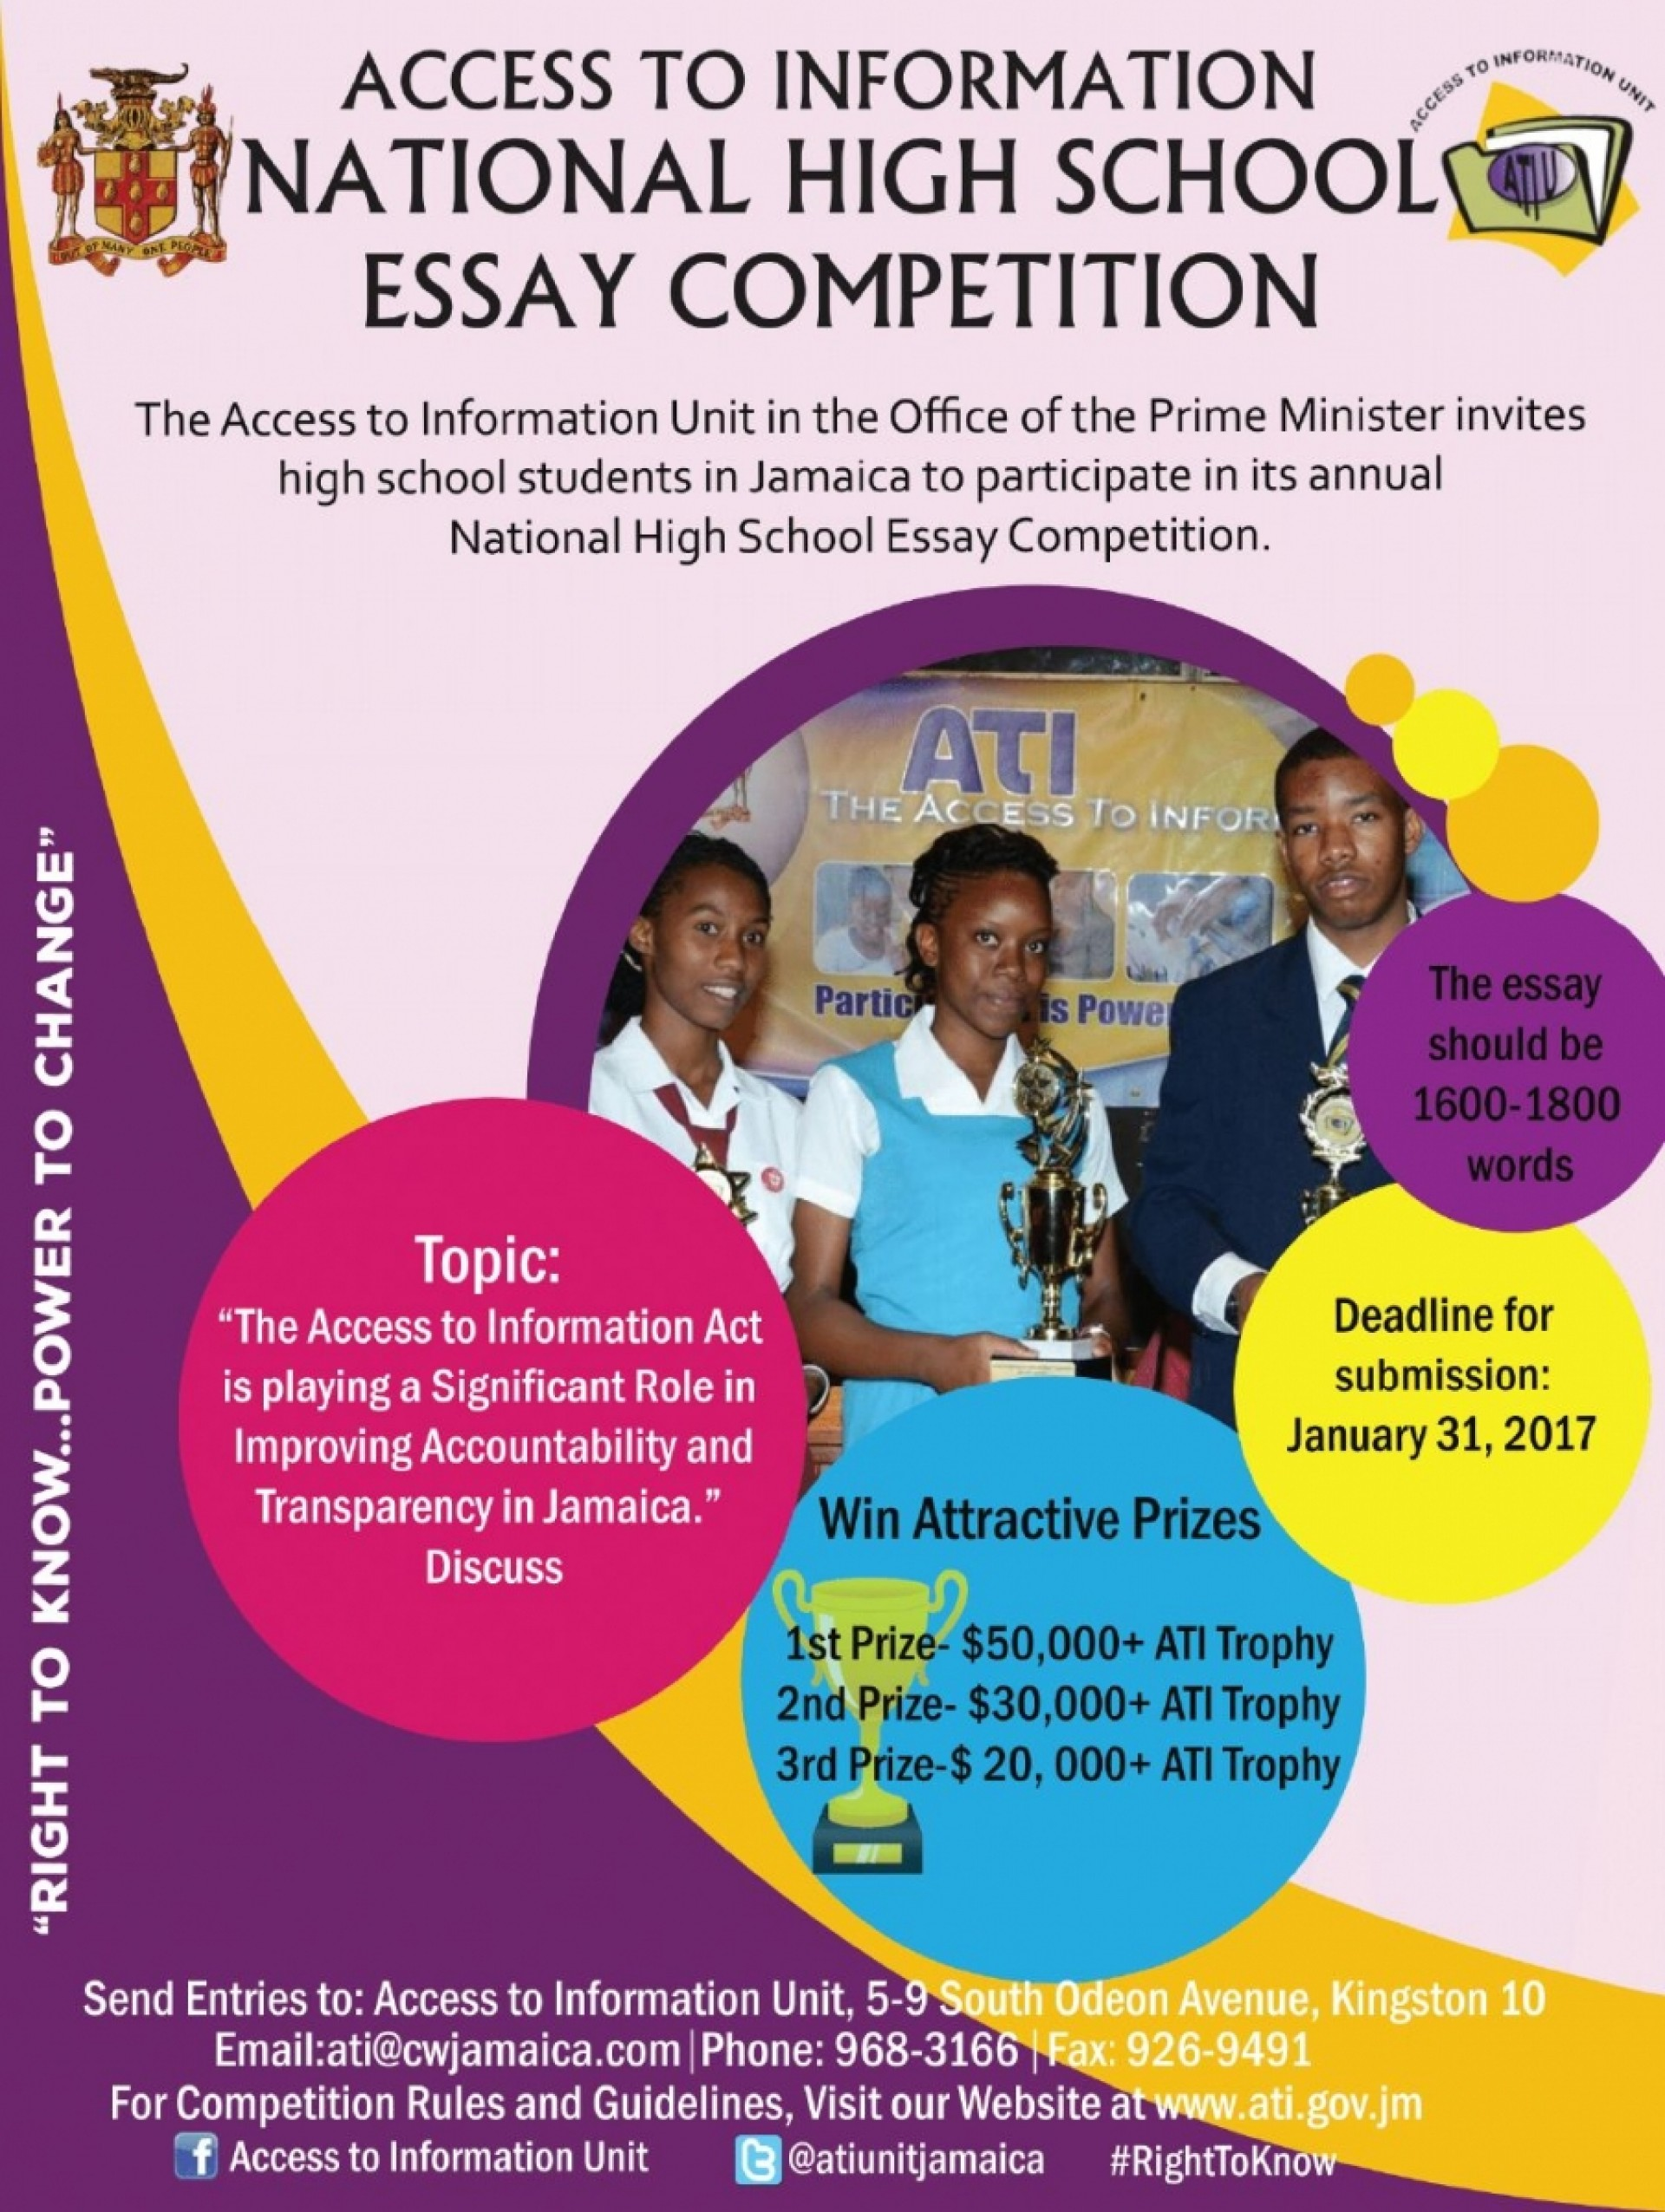 005 Deadline Ati Essay Competition Youth Information Centers Ncyd Contests For Highhool Students April Middle Competitions International Writinghoolers Example Staggering High School 2017 1920